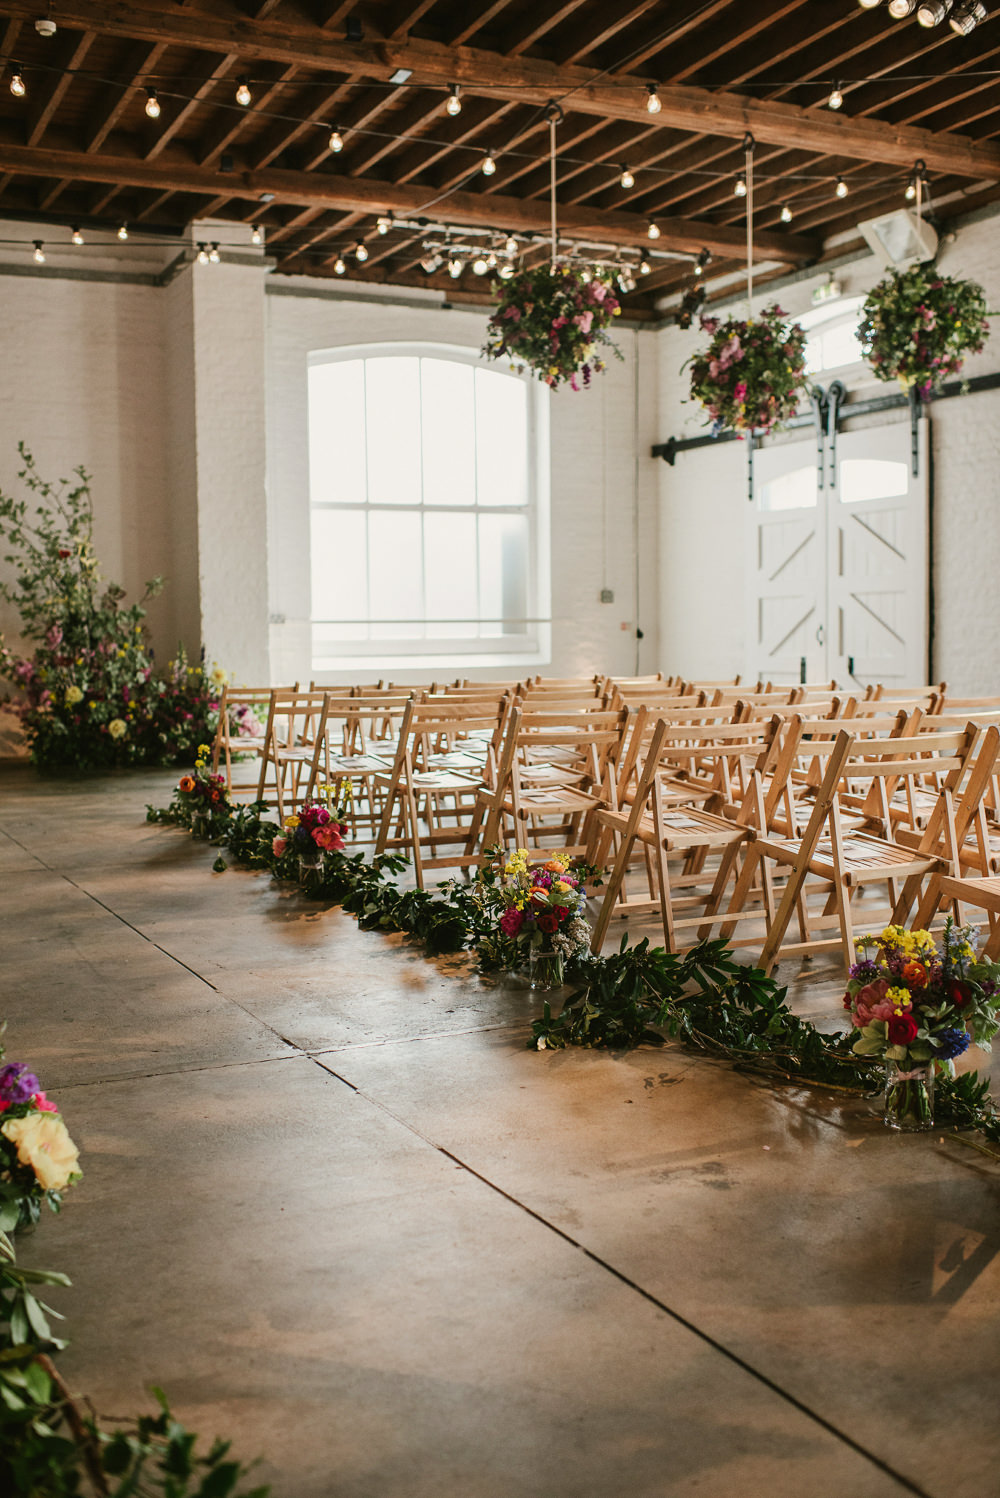 Ceiling Hanging Suspended Flowers Decor Spring Coral Peony Natural Wild Colourful Aisle Riverside London Wedding Ellie Gillard Photography